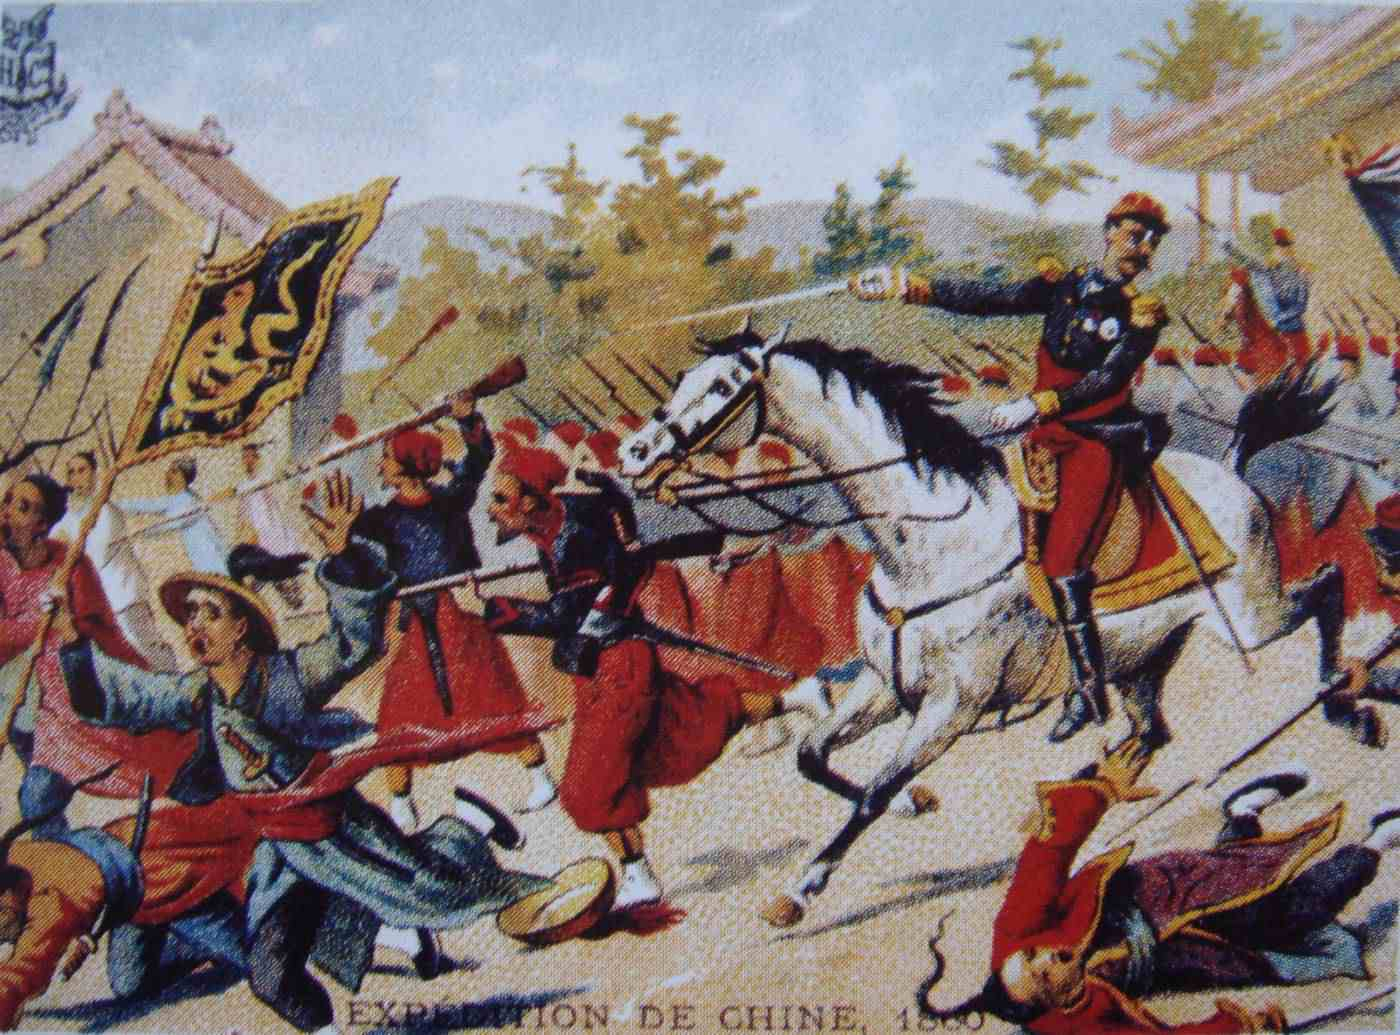 The French and British defeated Qing China in the Second Opium War and imposed harsh terms